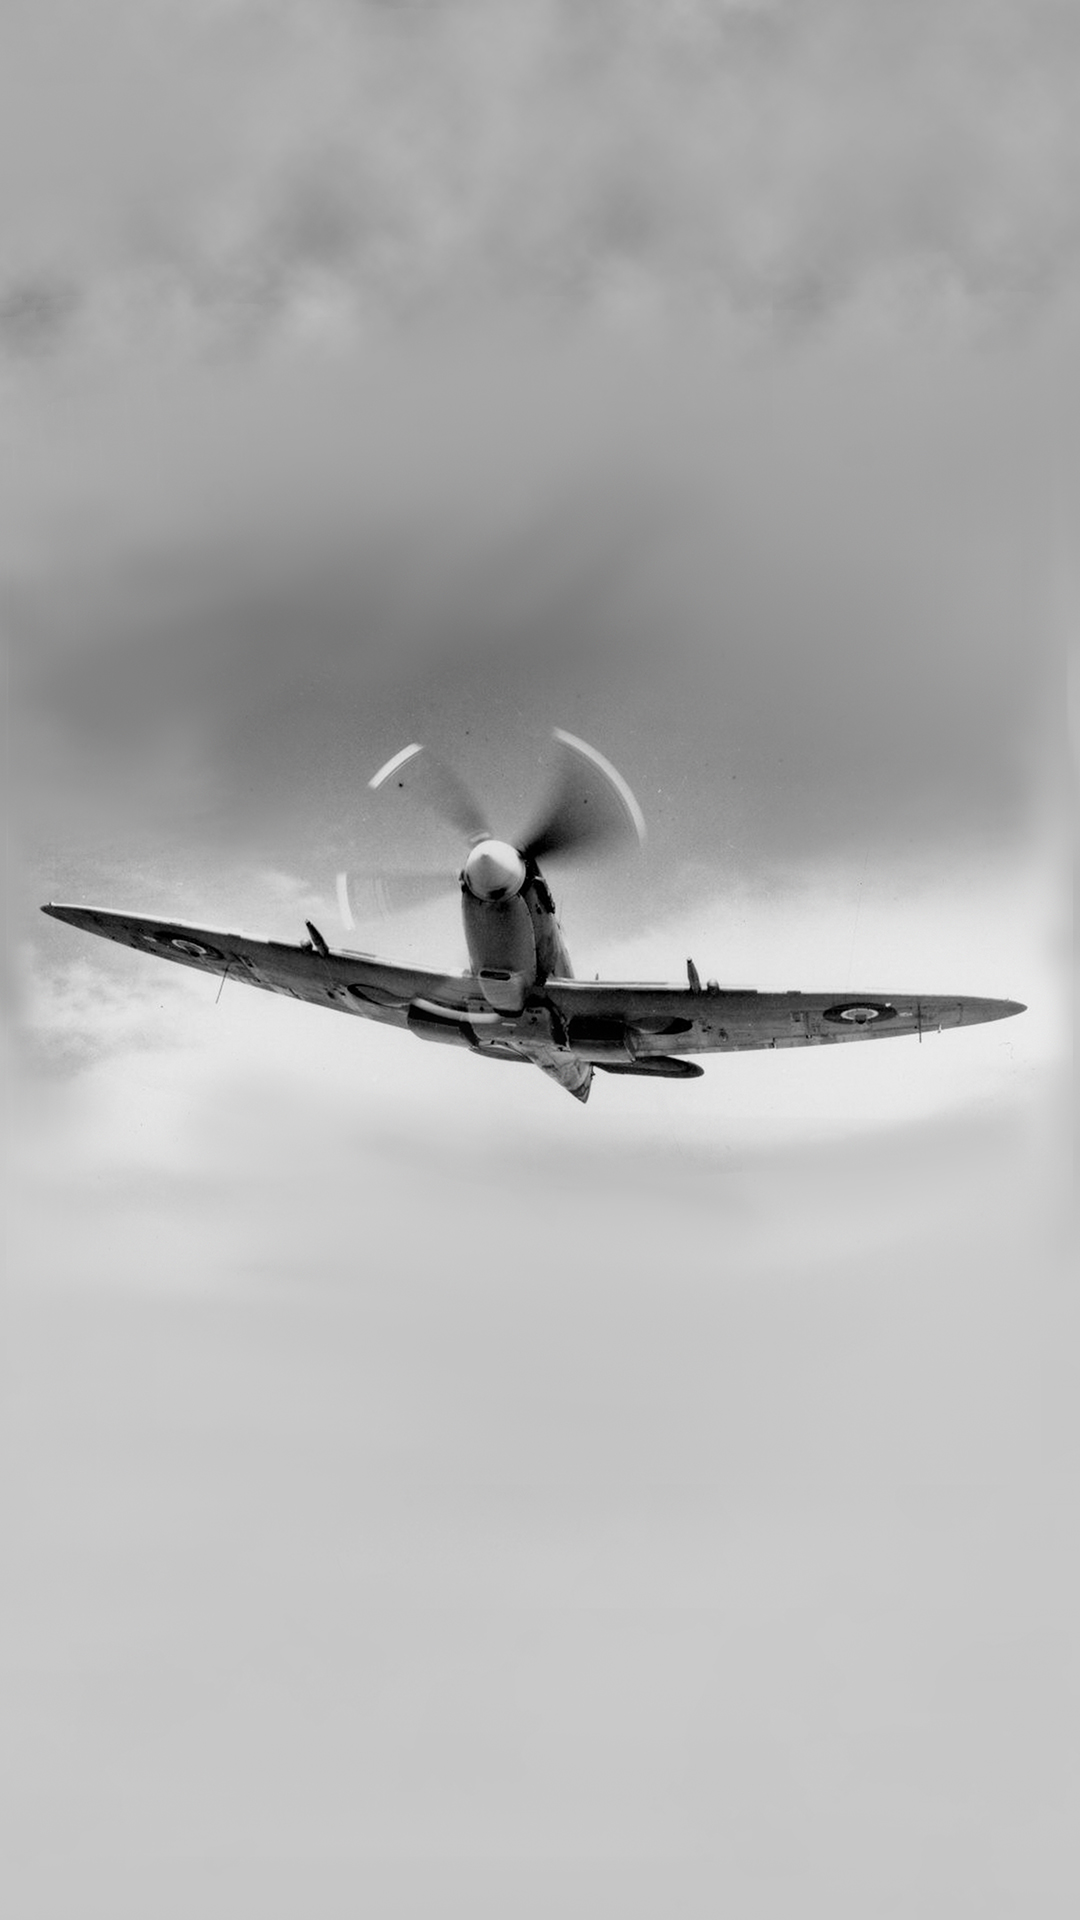 Dimensions Of A Wallpaper For Iphone X War Plane Hd Wallpaper For Your Mobile Phone